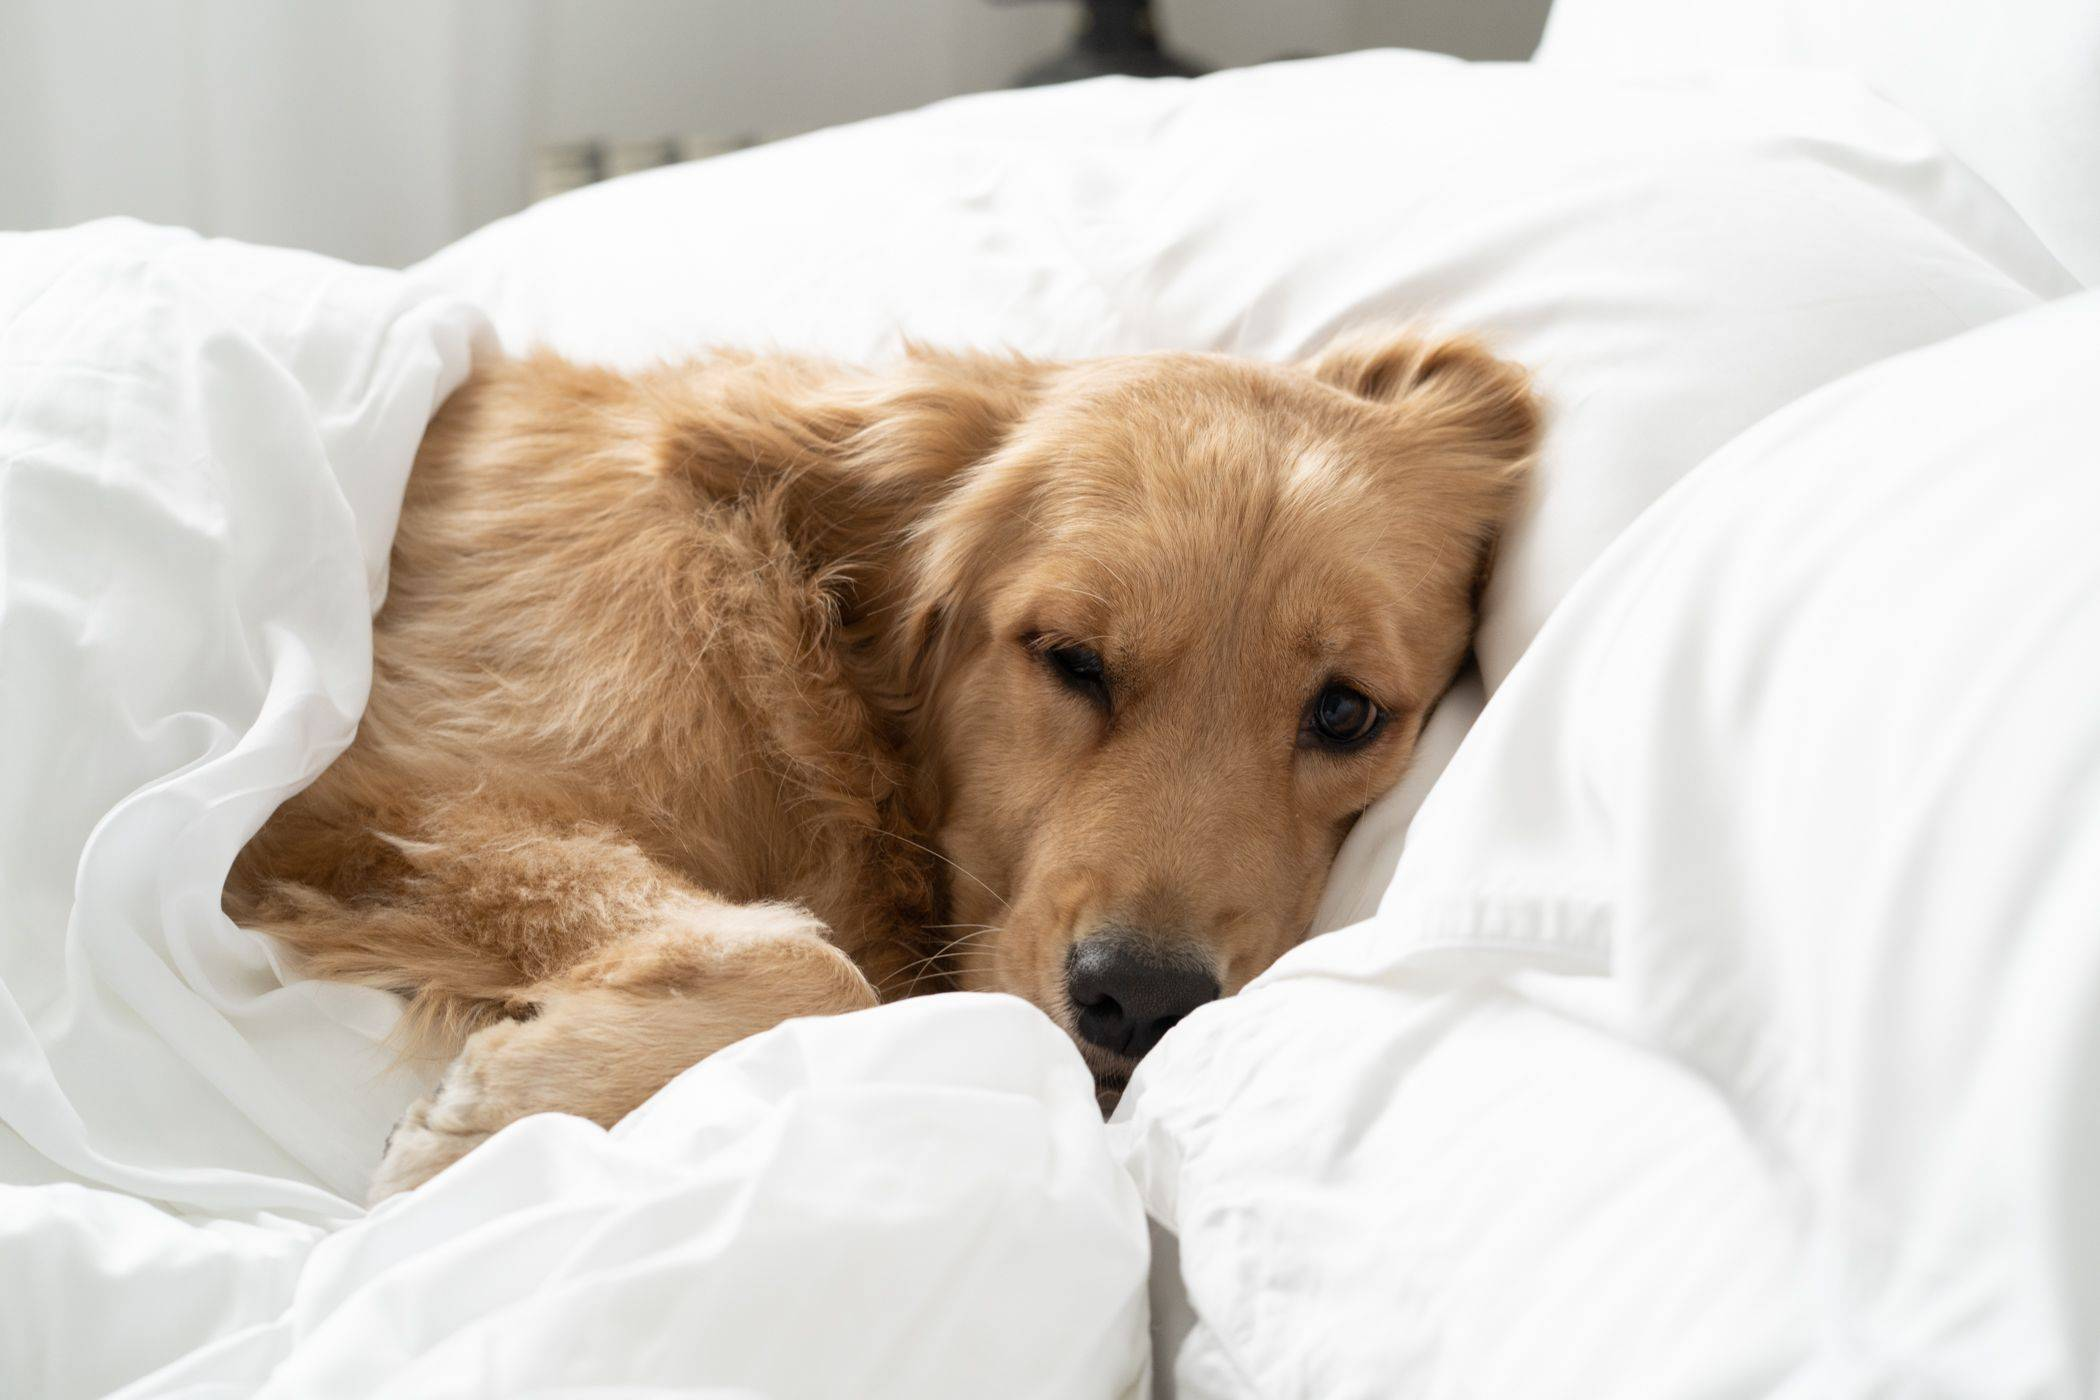 Dog laying on bed, under a blanket